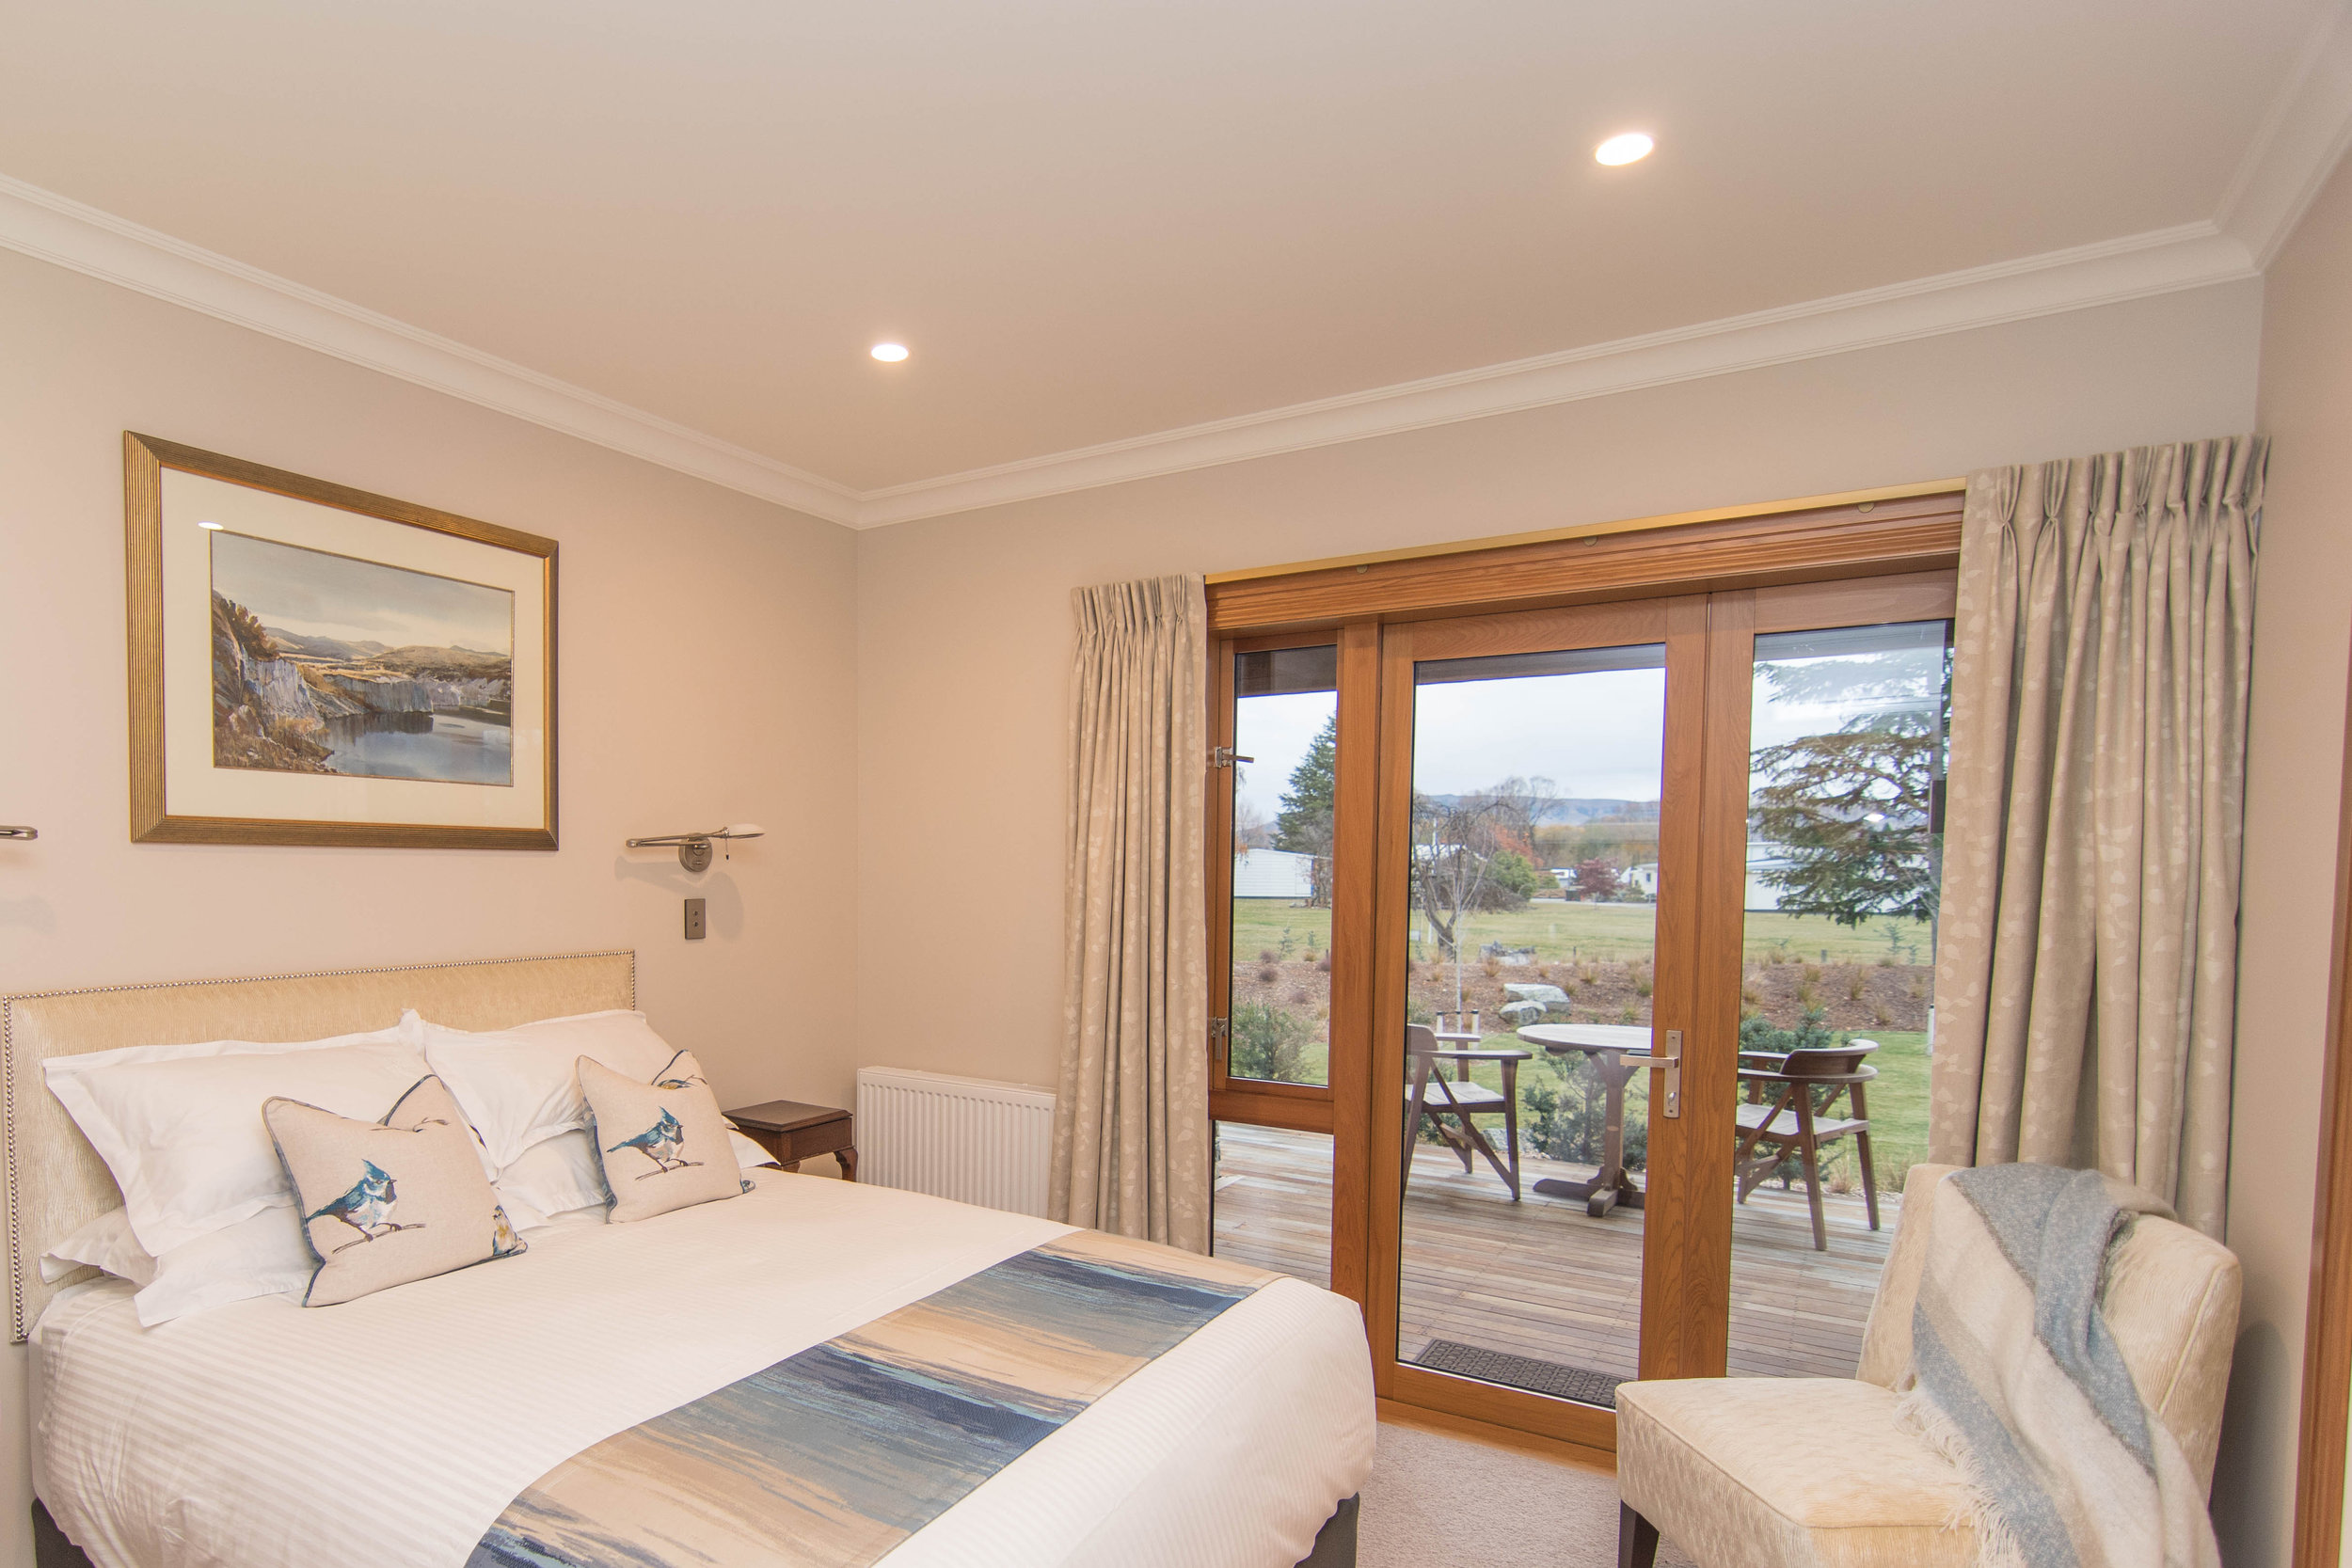 Enjoy the panoramic views of the alpine high country from the comfort of your bed.